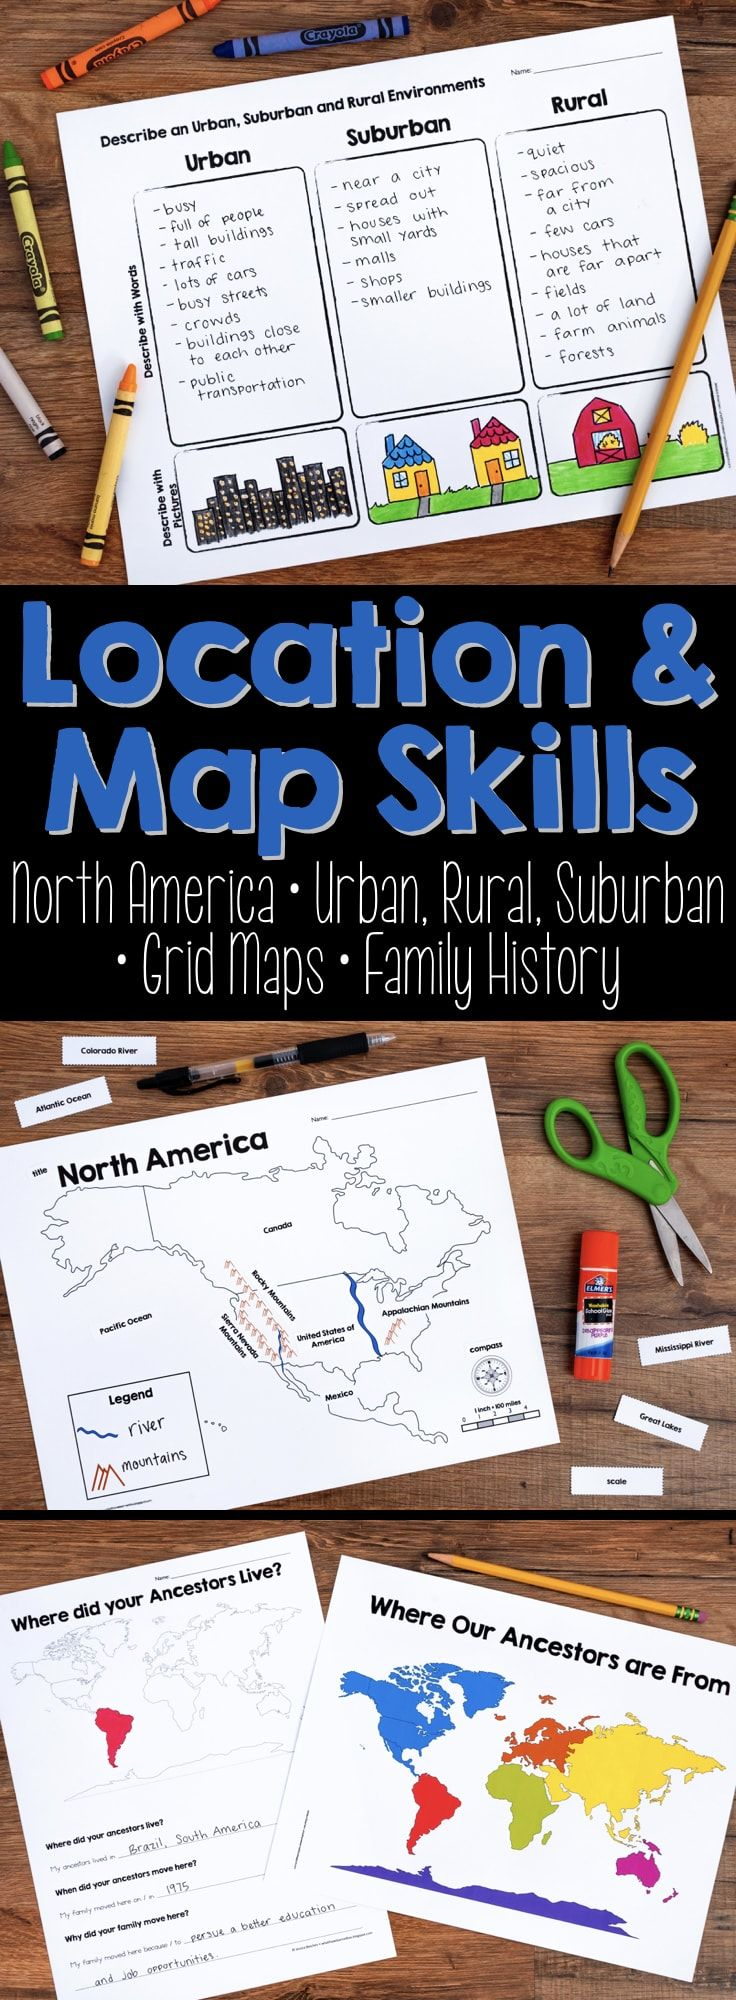 Photo of Map Skills & Location Social Studies Unit